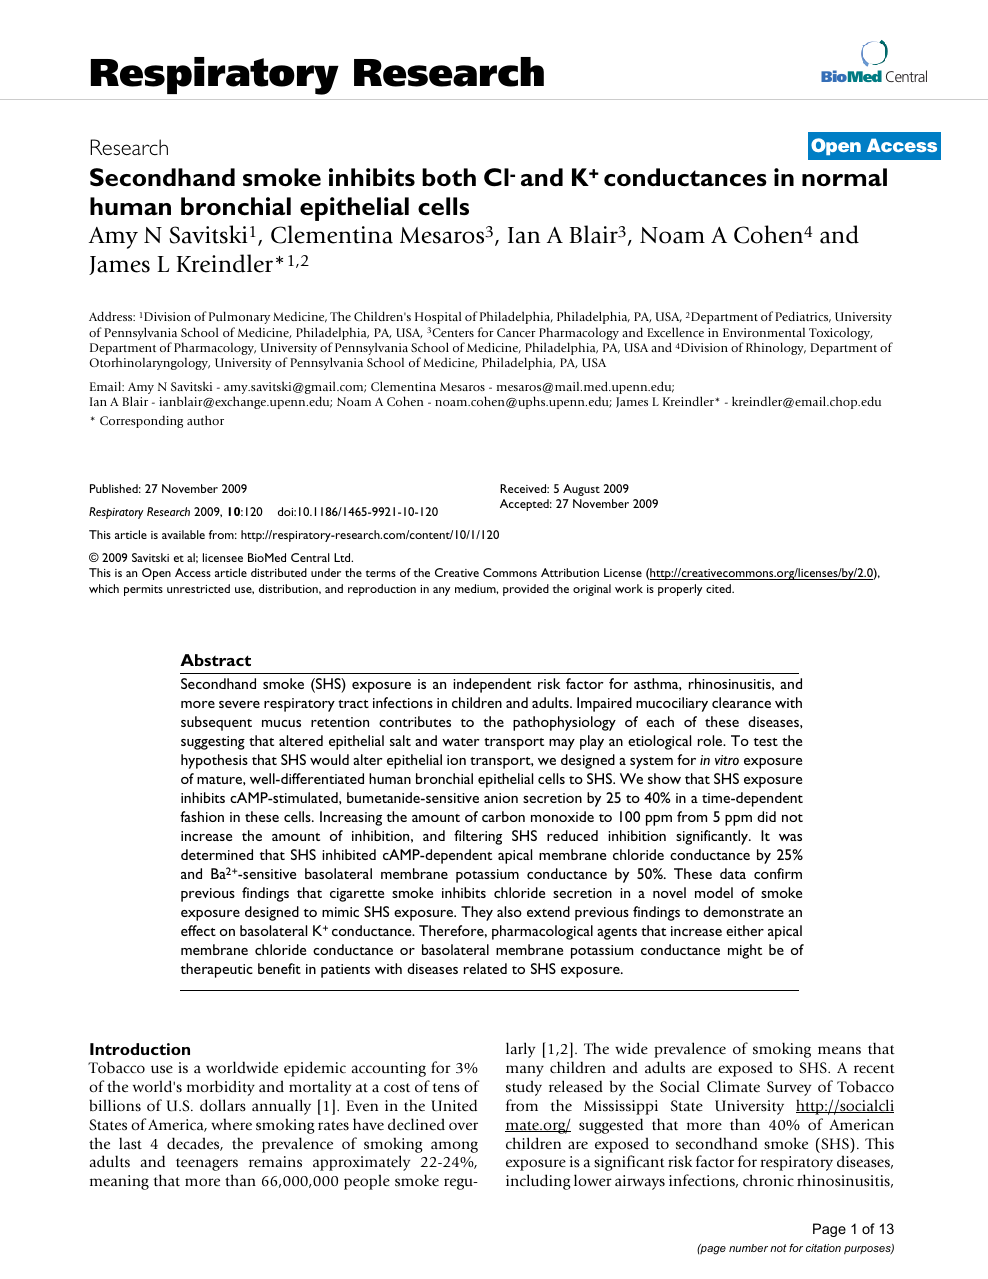 Secondhand smoke inhibits both Cl- and K+ conductances in normal